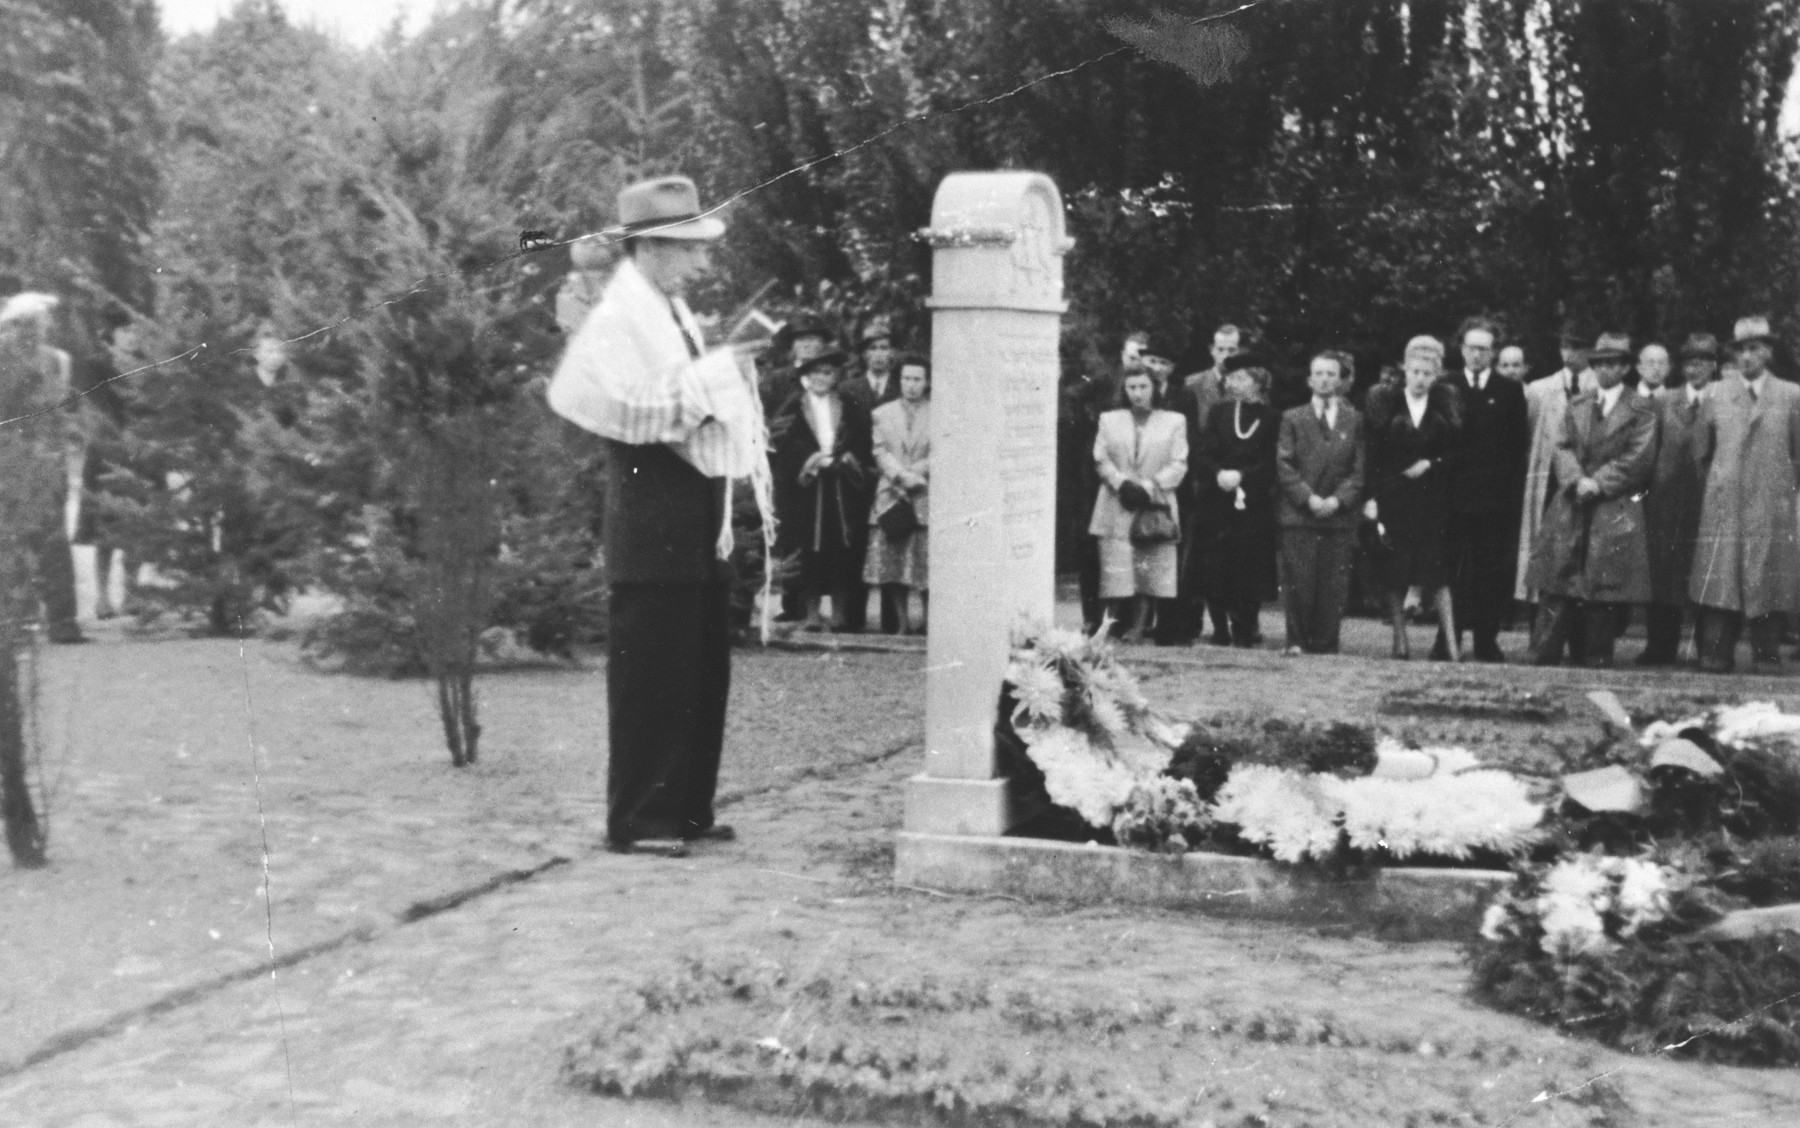 Abraham Lipshitz, leader of Hanover Jewish community, reads memorial prayers following the burial of 367 boxes of ashes of Jews who perished in the Hanover-Ahlem concentration camp.